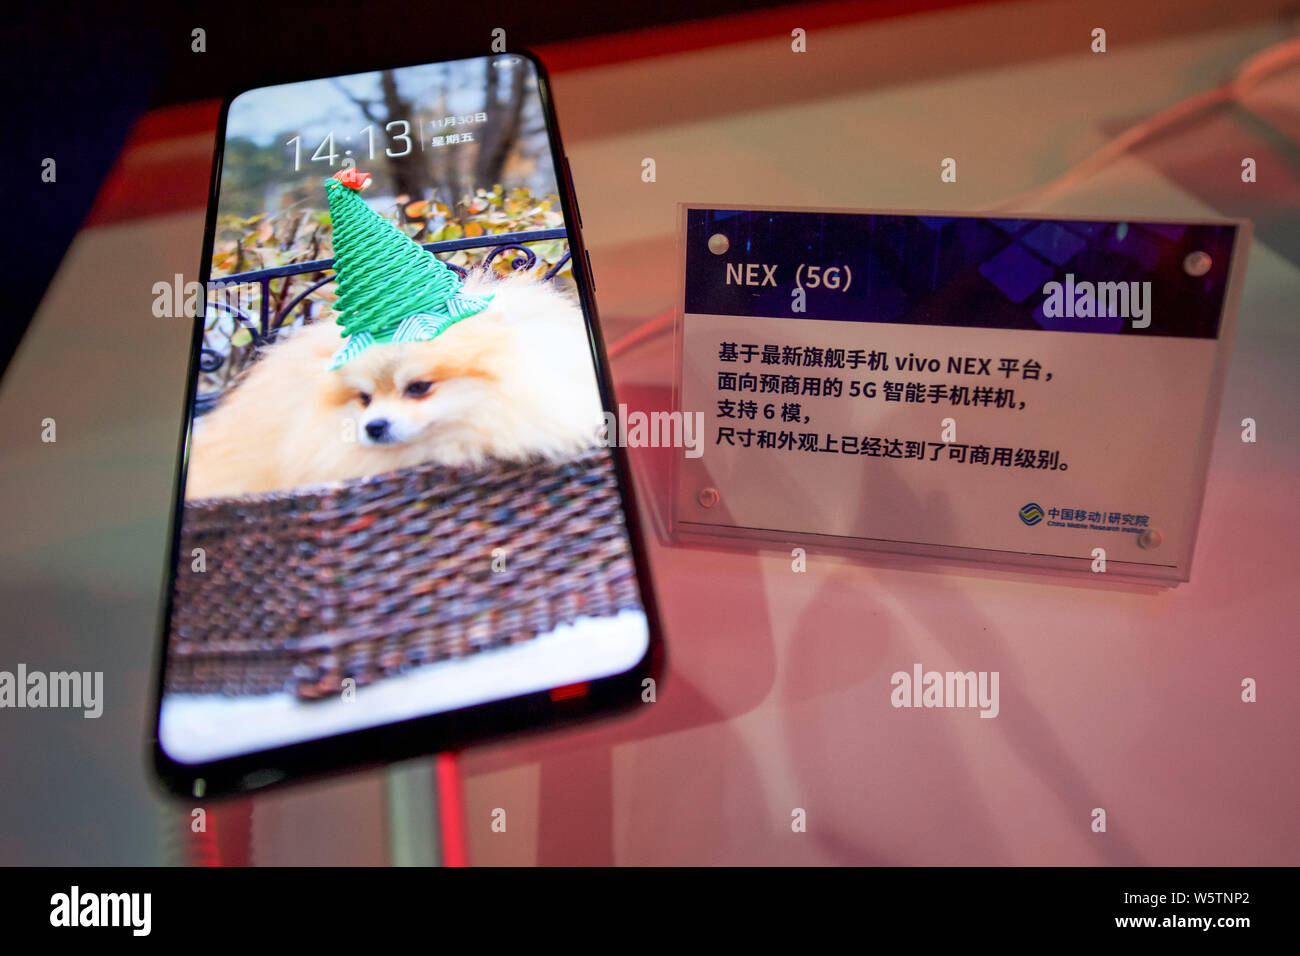 View of the Vivo Nex 5G smartphones powered by the Qualcomm